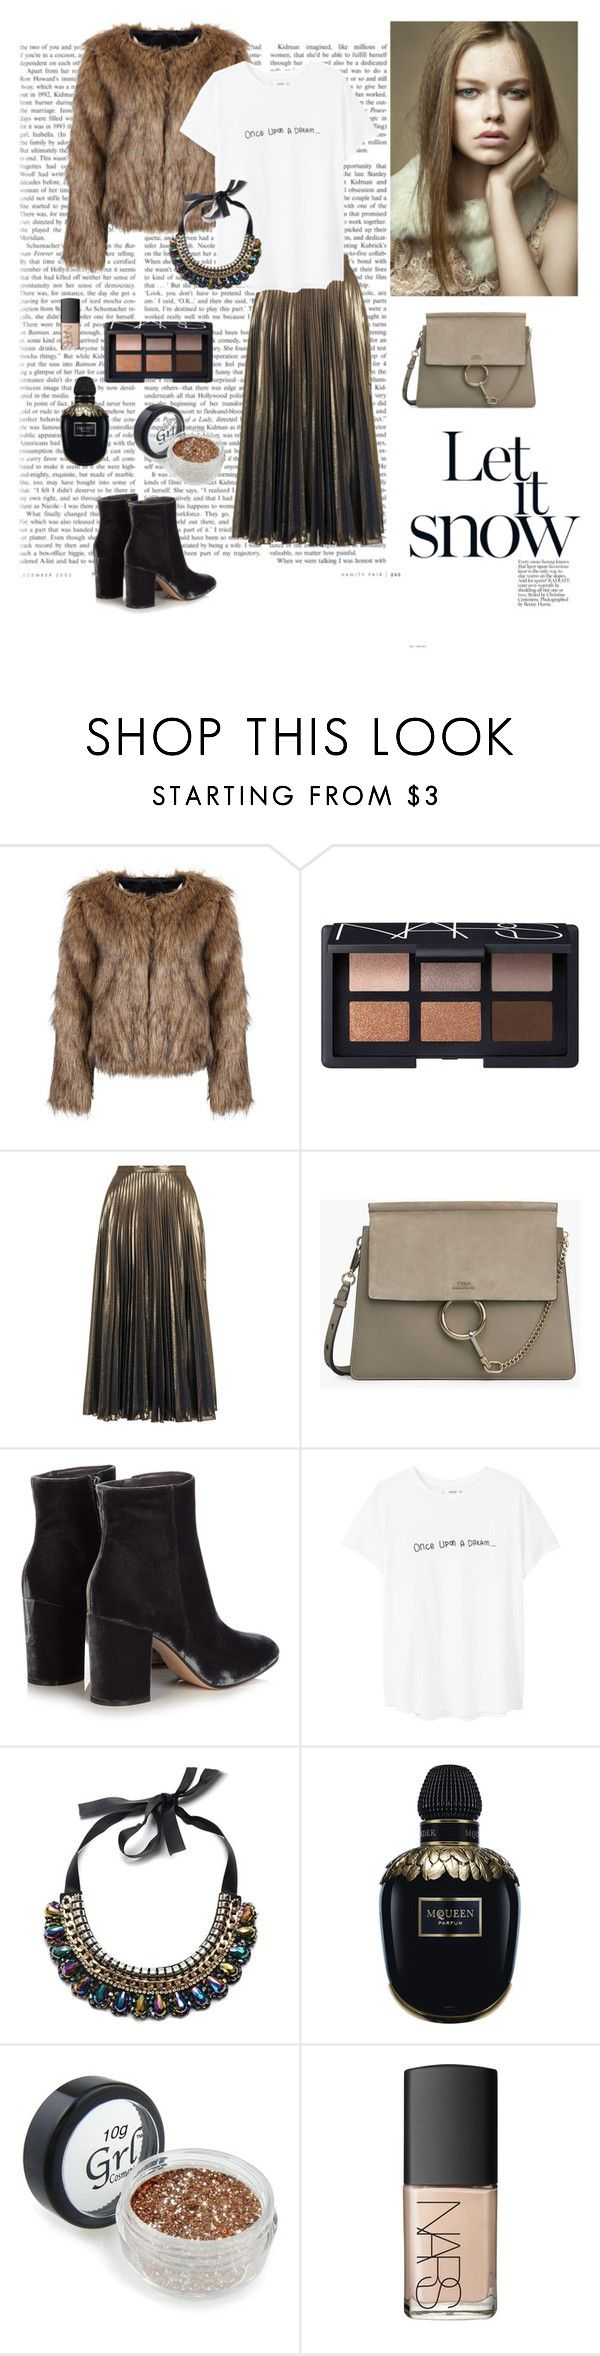 """Xmas vol.3"" by dorey on Polyvore featuring NARS Cosmetics, Topshop, Gianvito Rossi, MANGO, Pretty Green and Alexander McQueen"